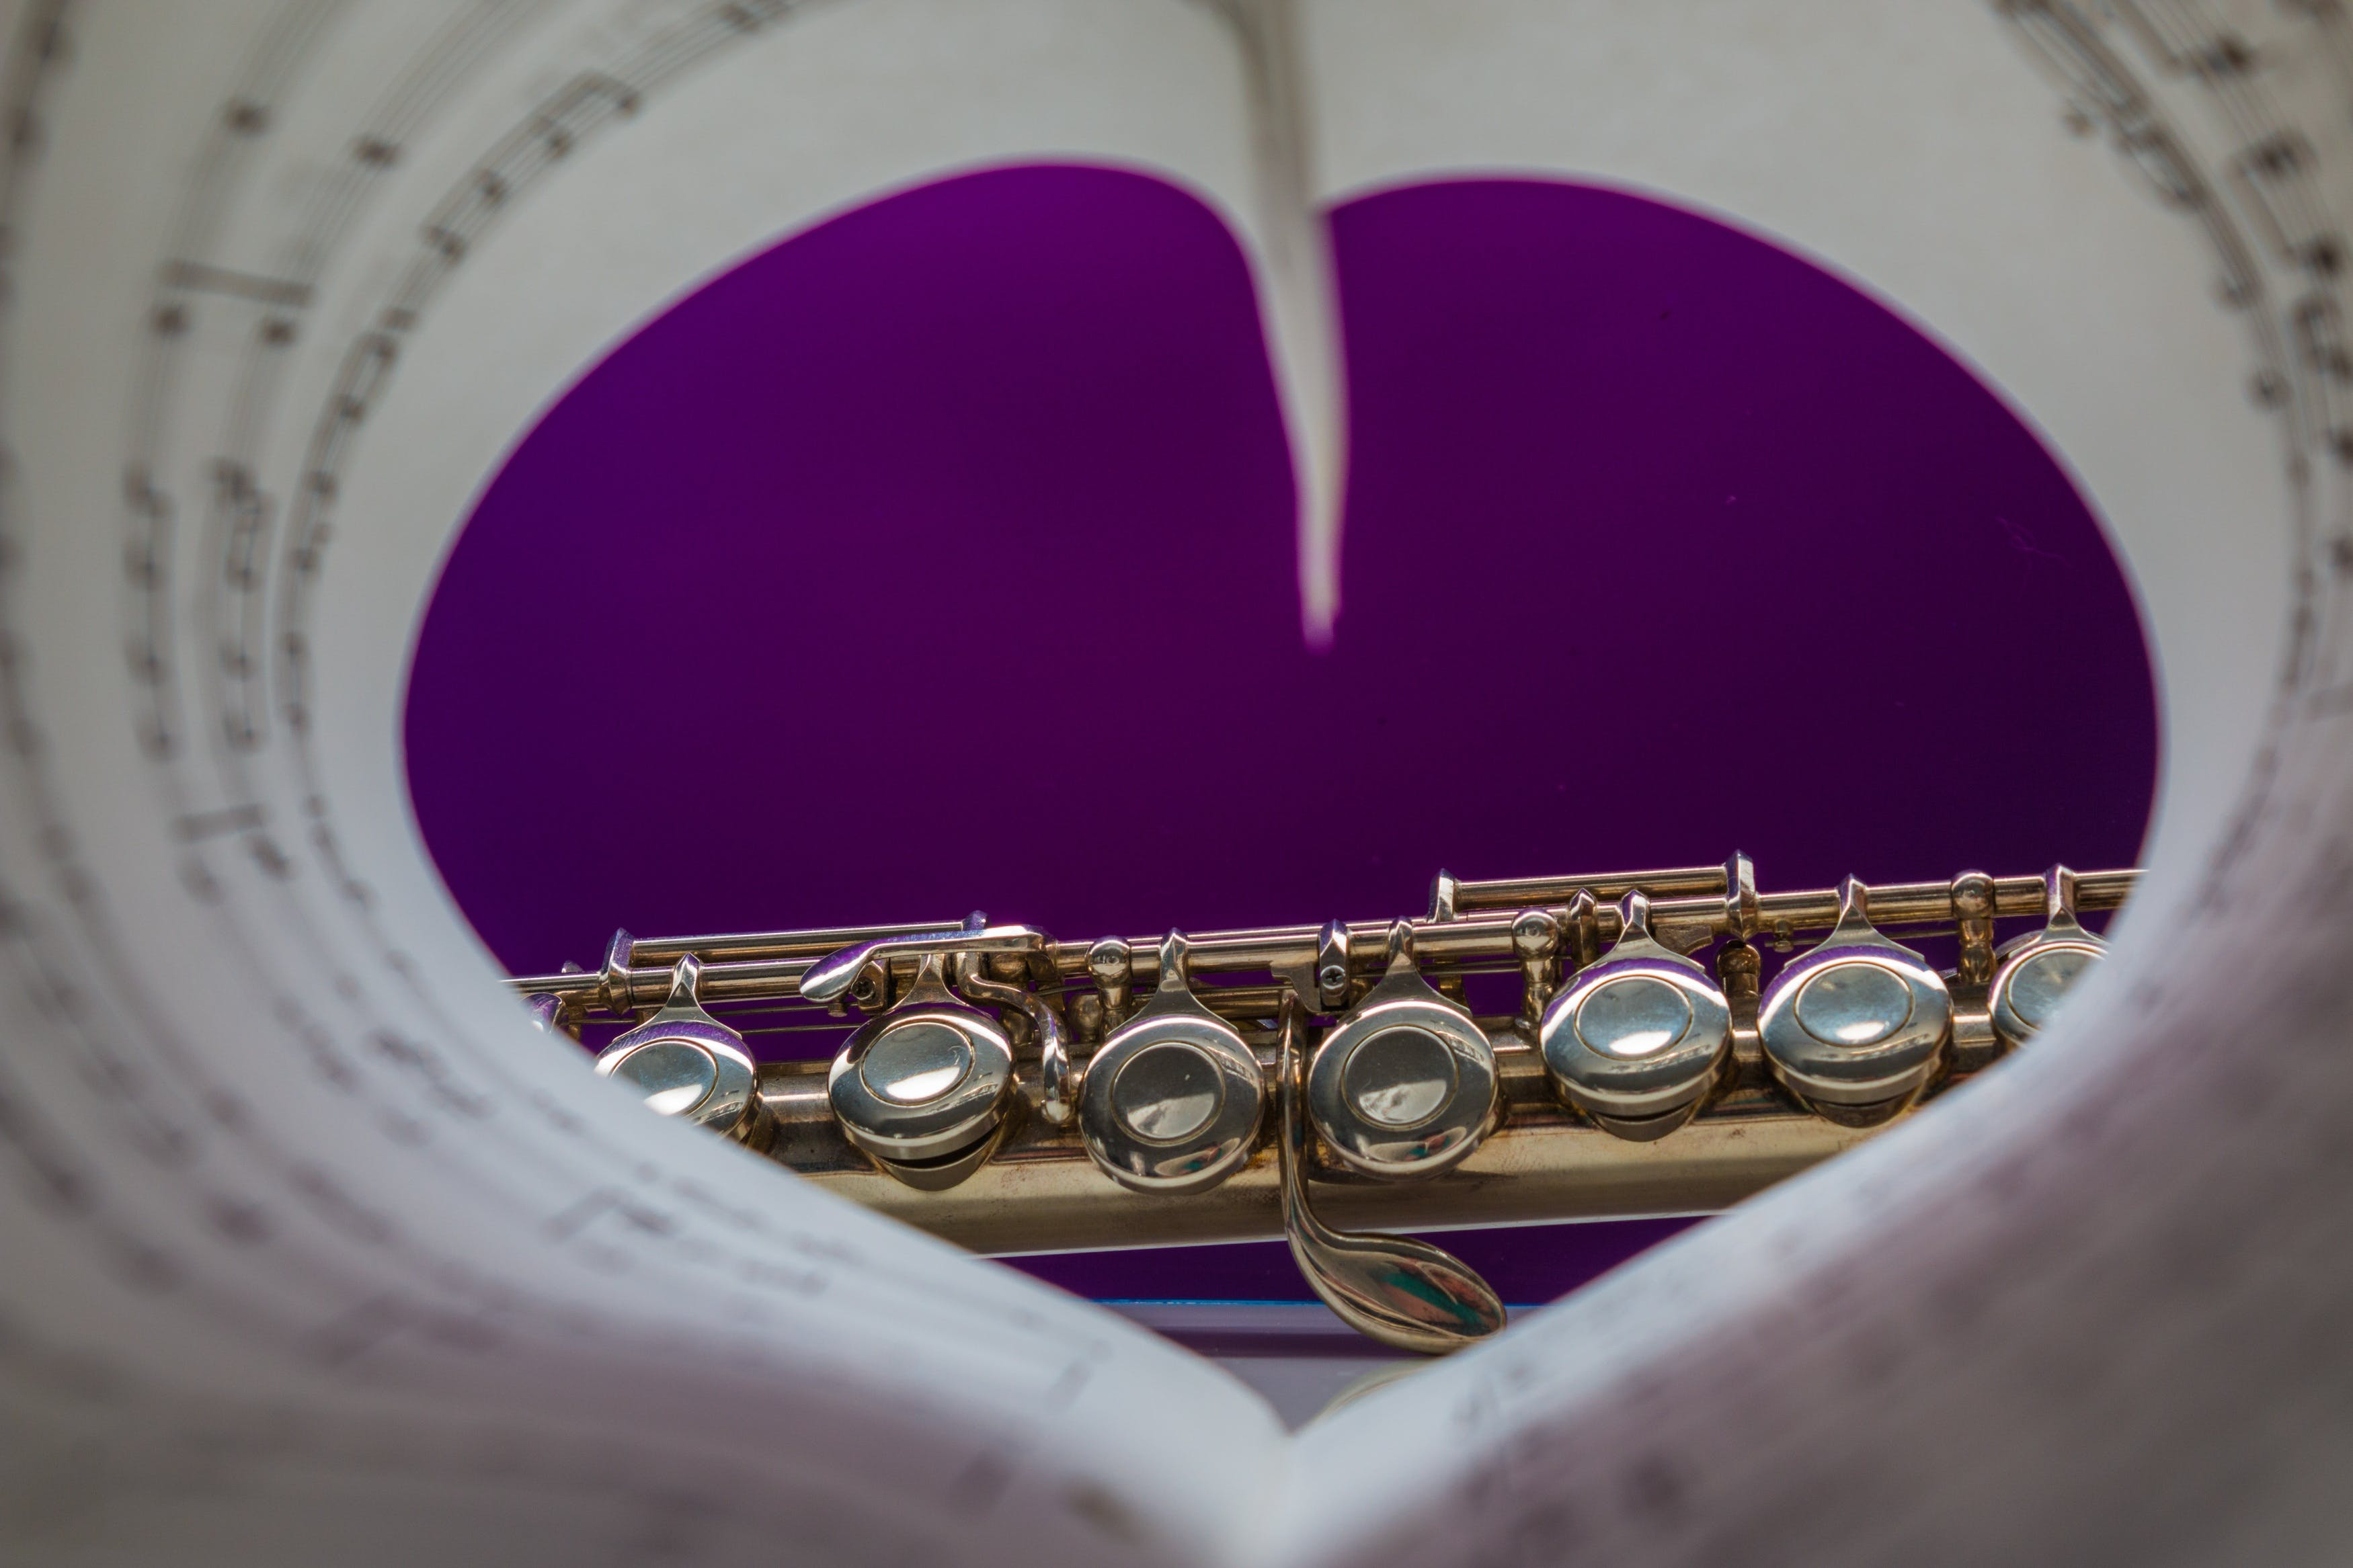 Free stock photo of heart, music, classic, musical instrument